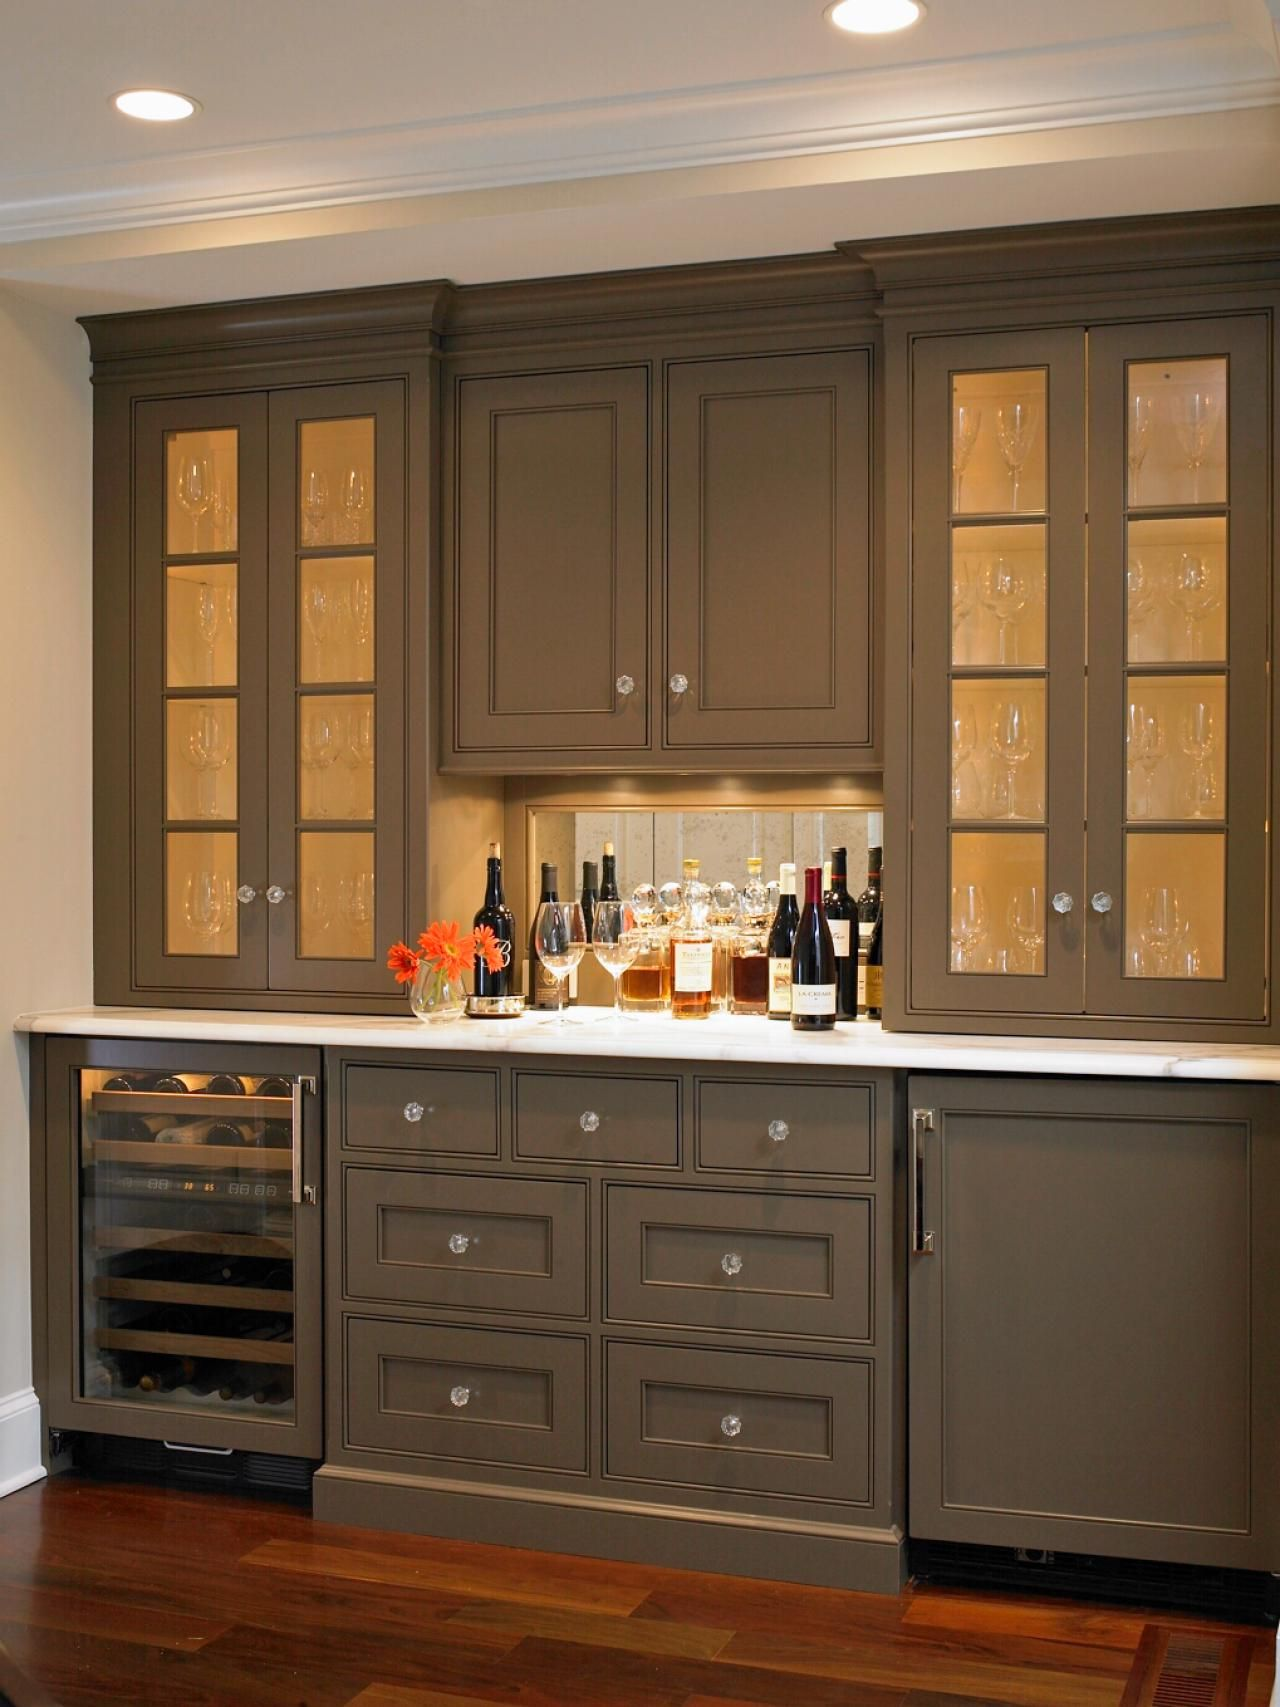 Best pictures of kitchen cabinet color ideas from top for Are painted kitchen cabinets in style